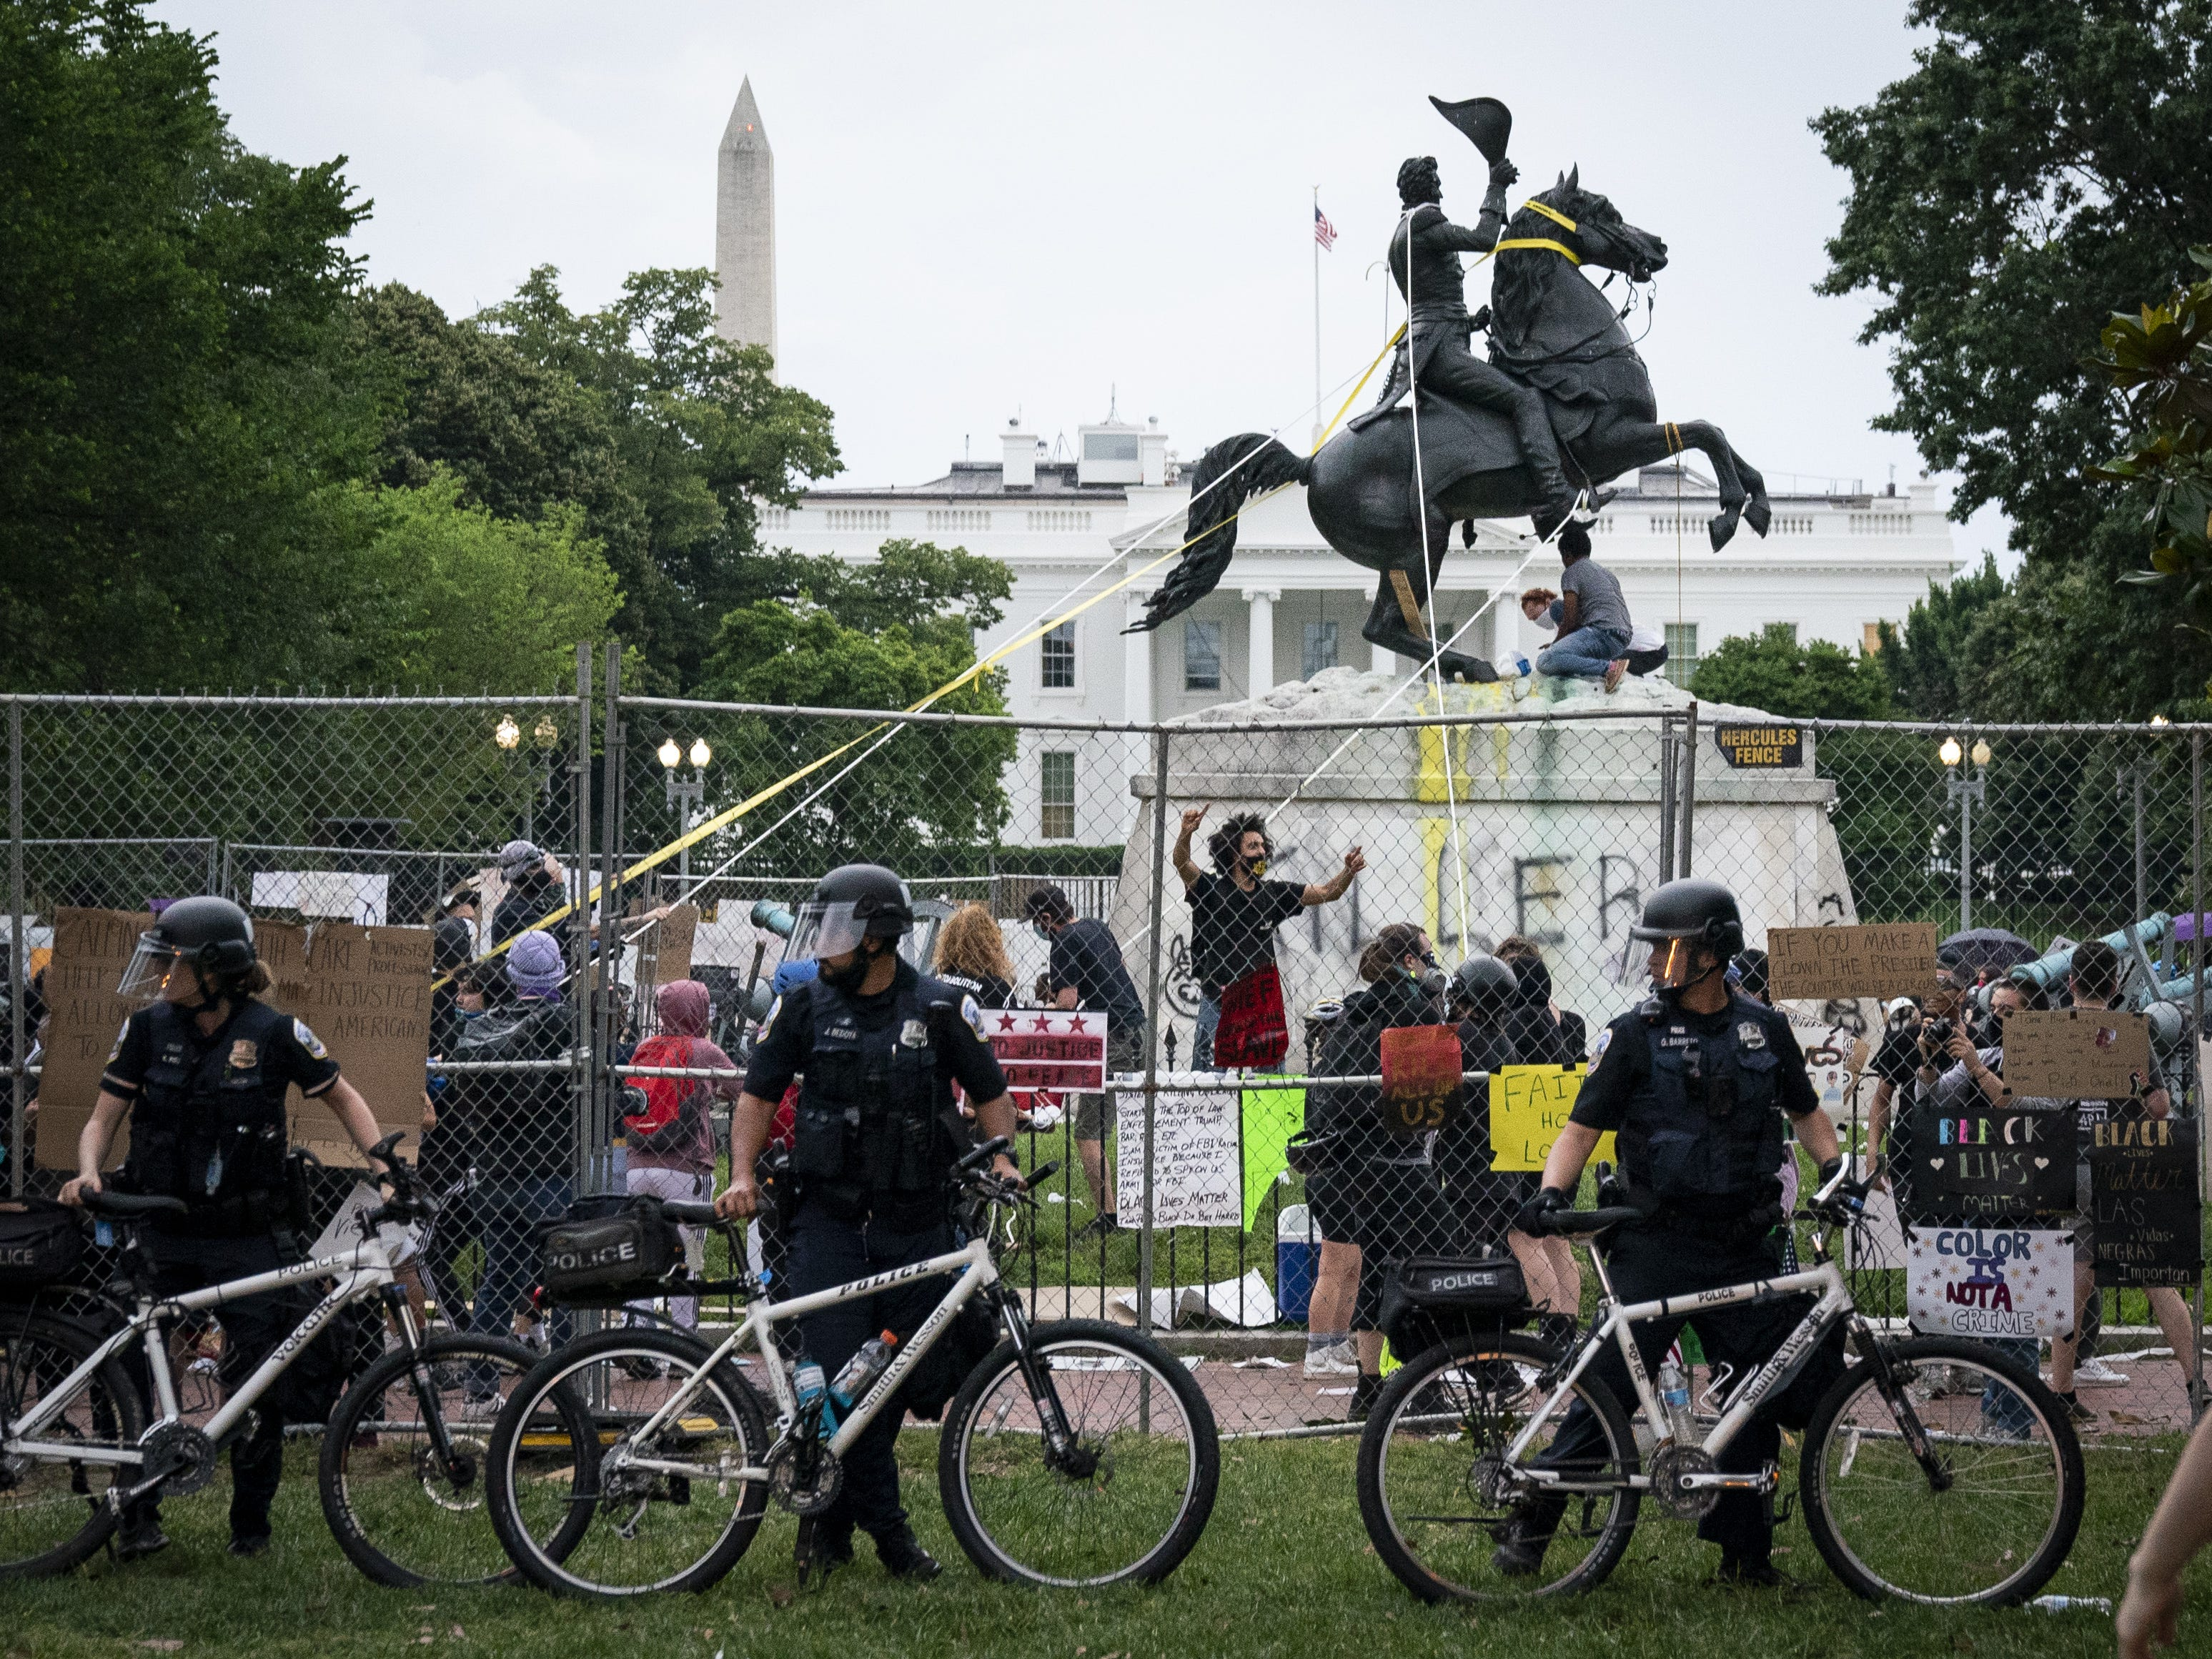 Reports: White House press told to leave grounds as tensions rise over attempted removal of Andrew Jackson statue